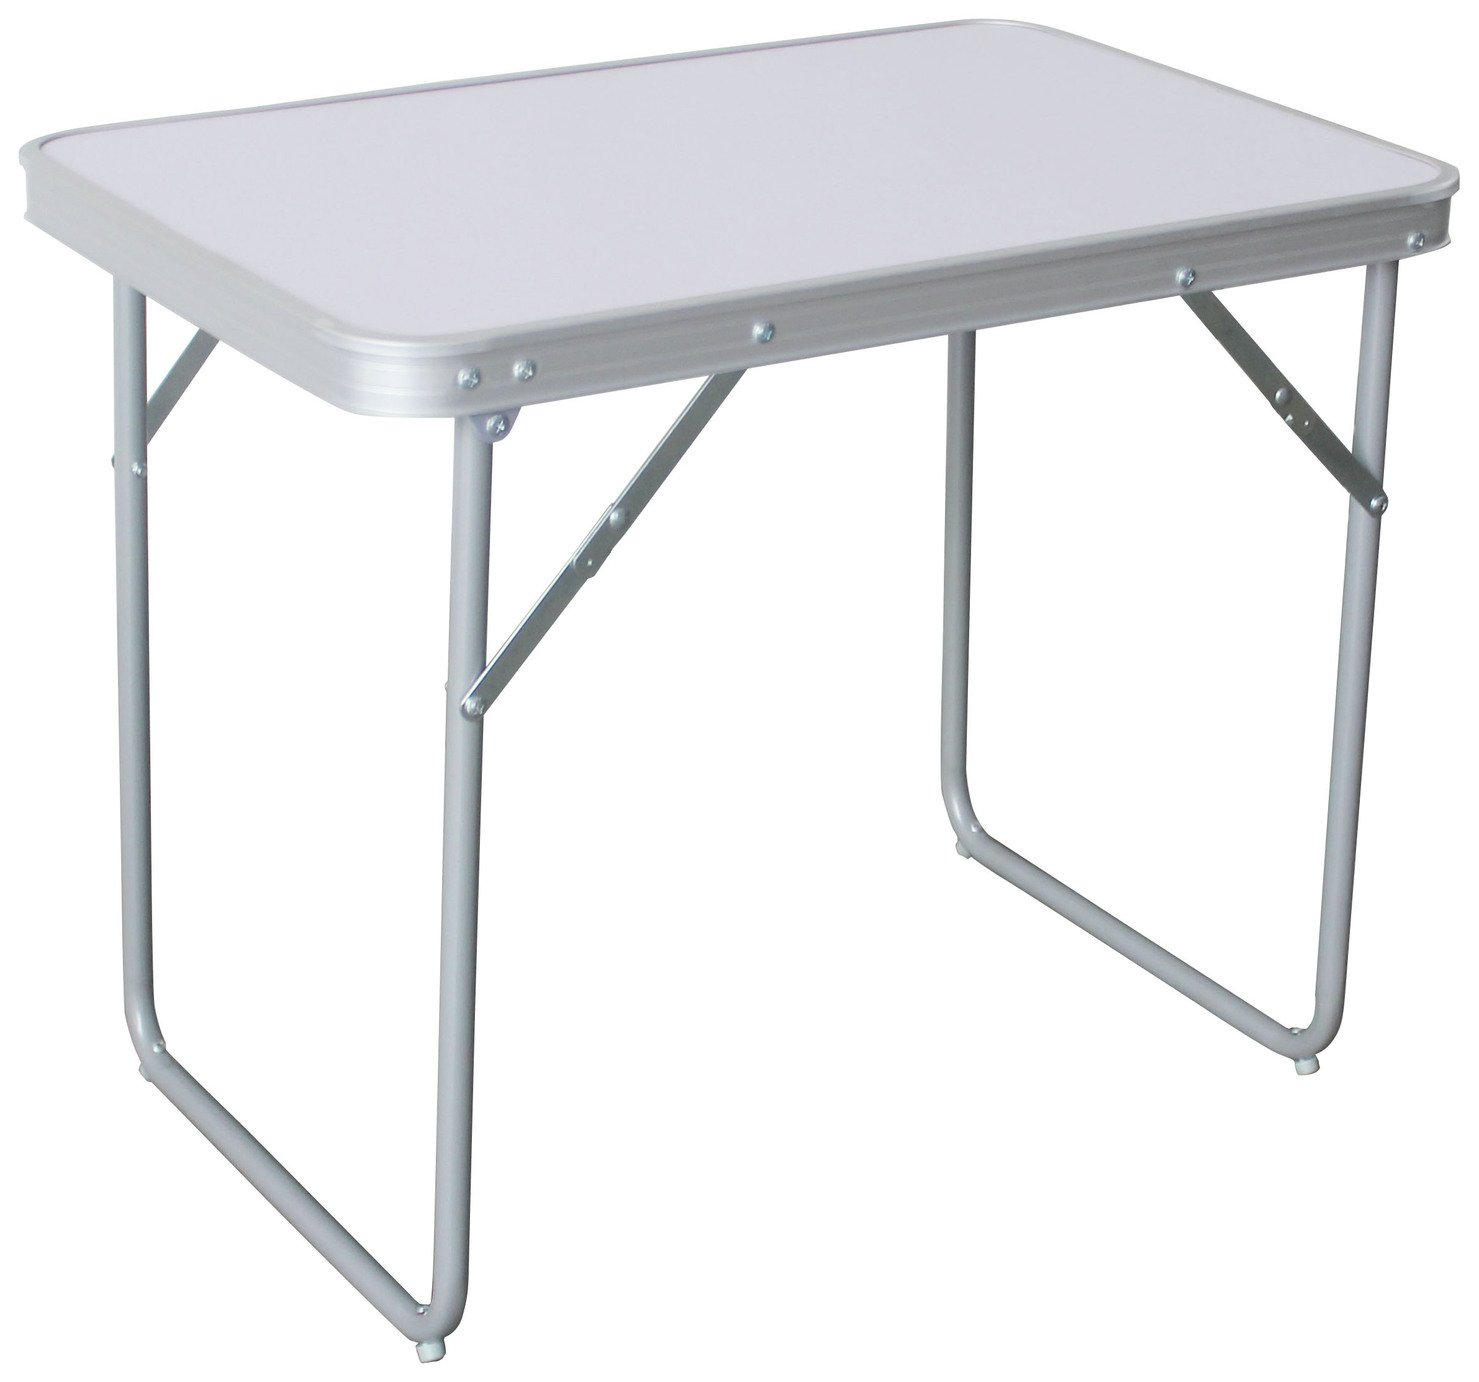 Beau Results For Folding Table